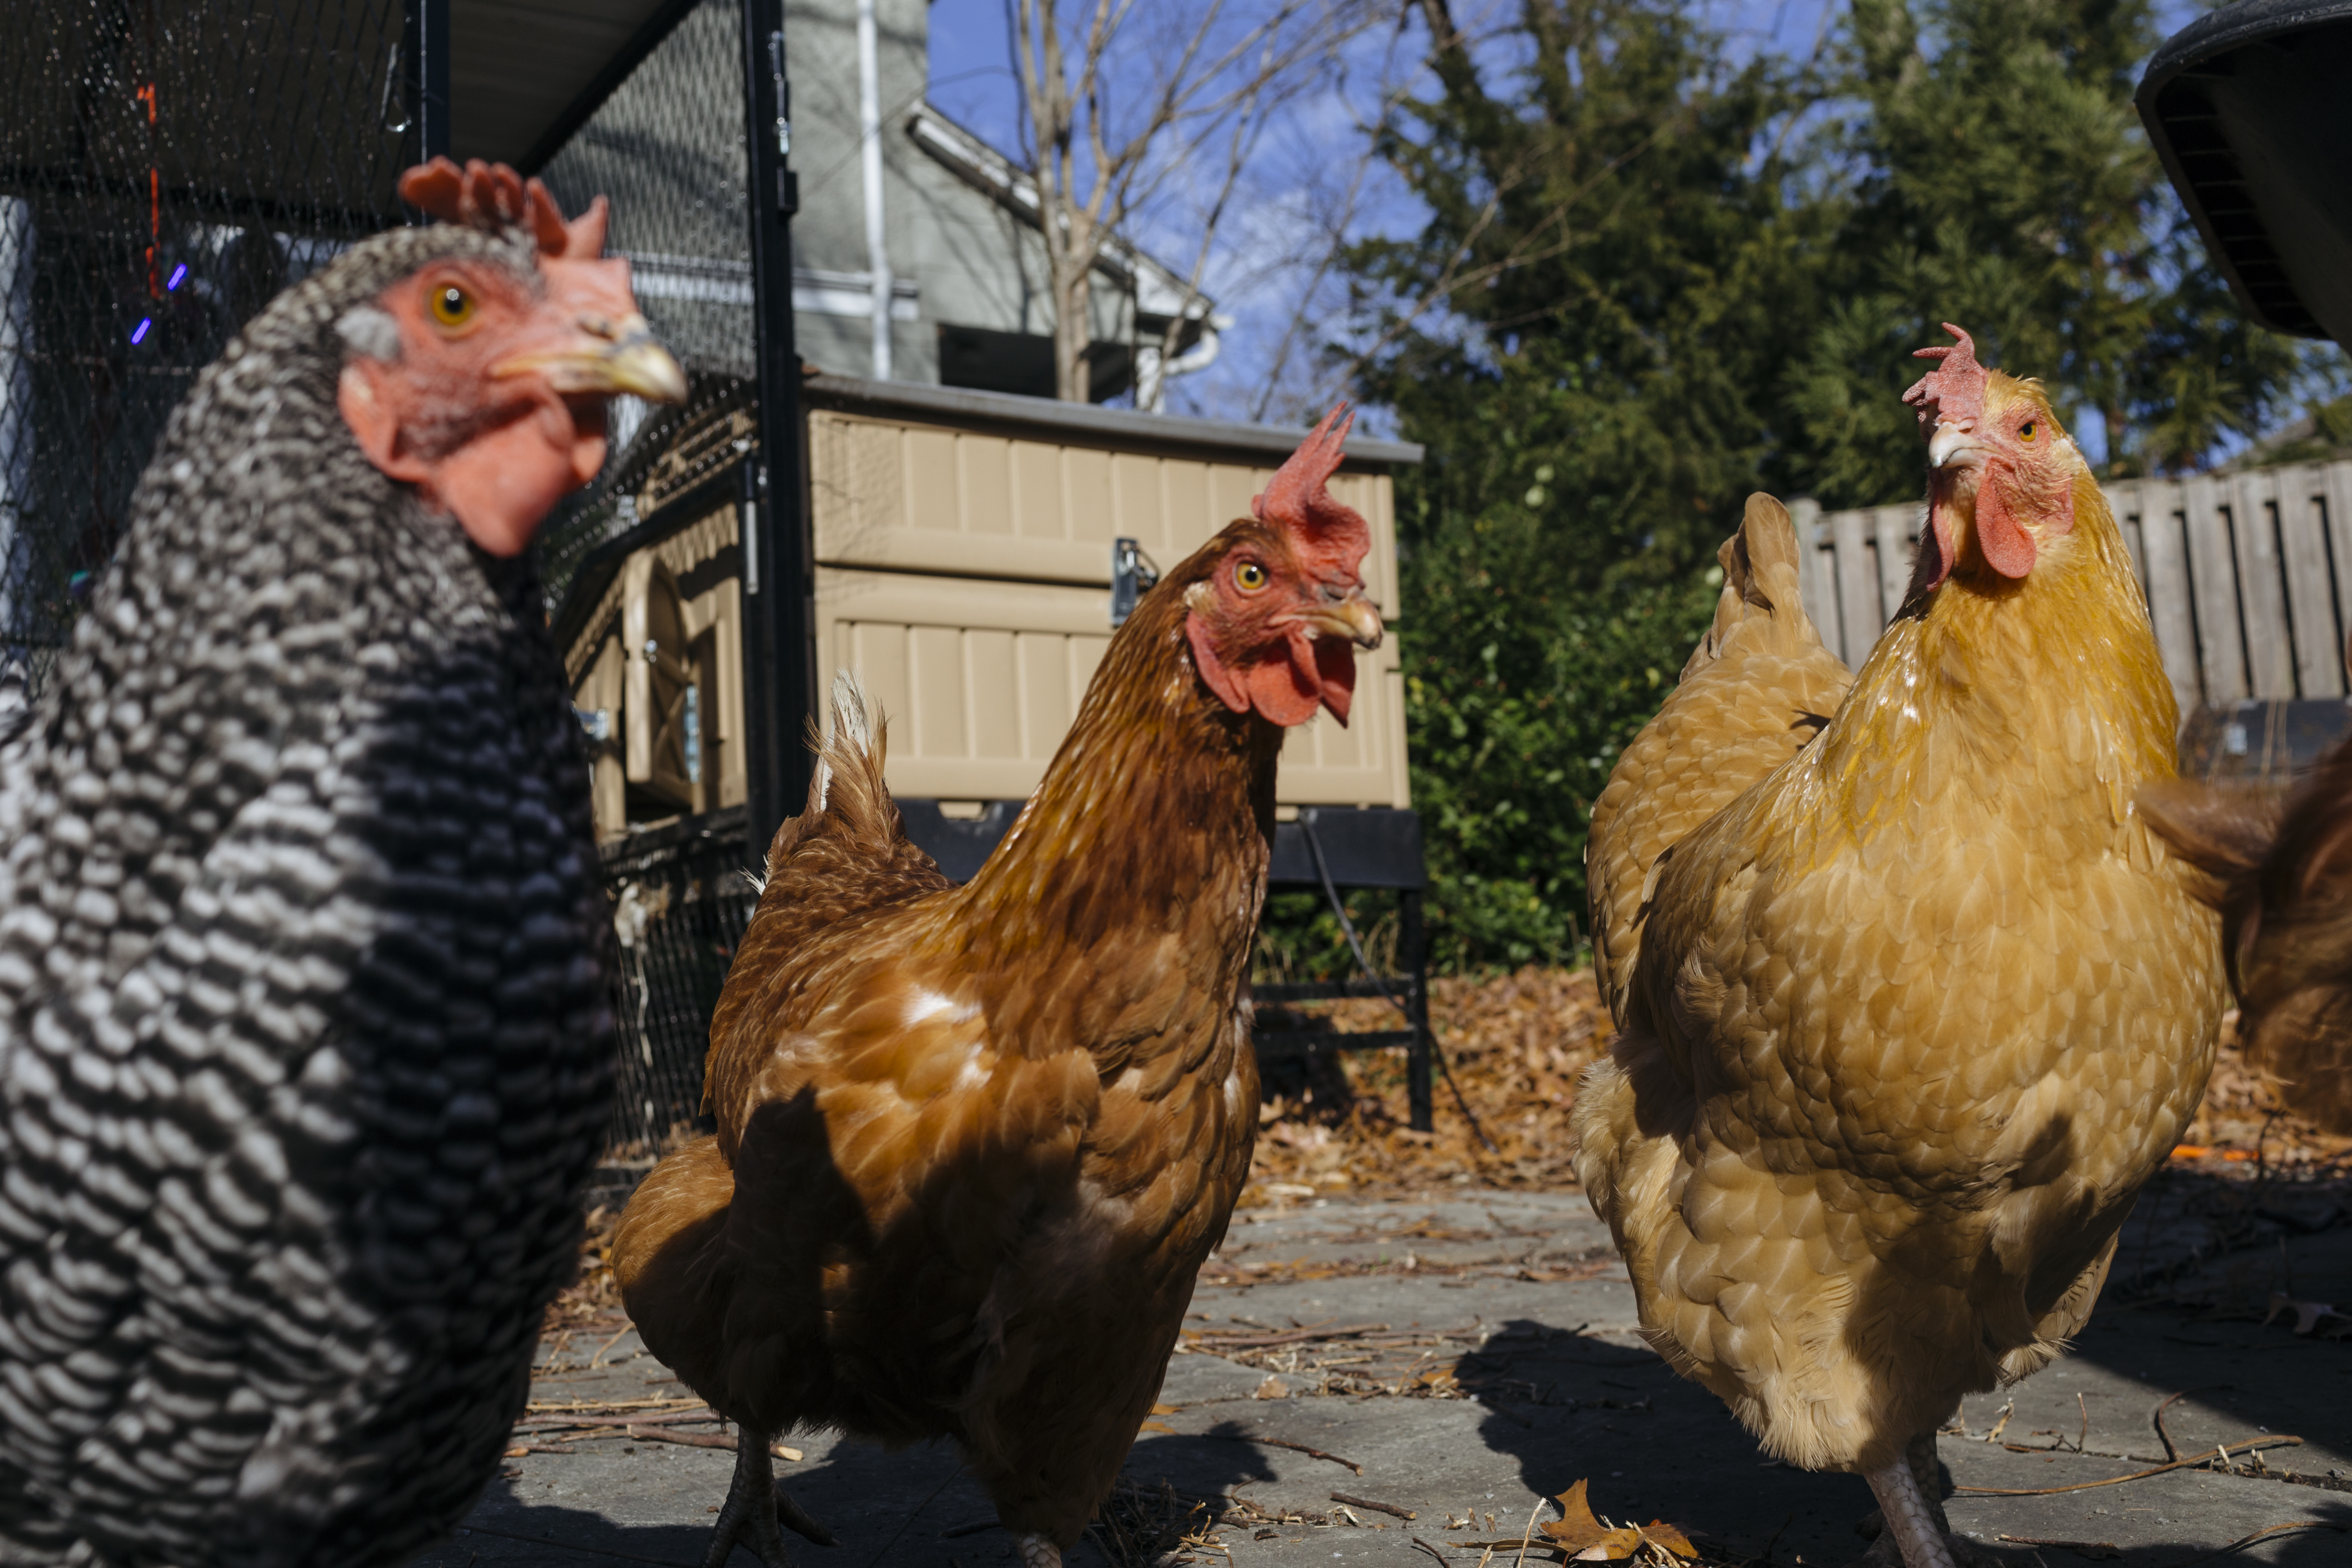 Mark Vershell and his backyard chickens in Takoma Park, Md.